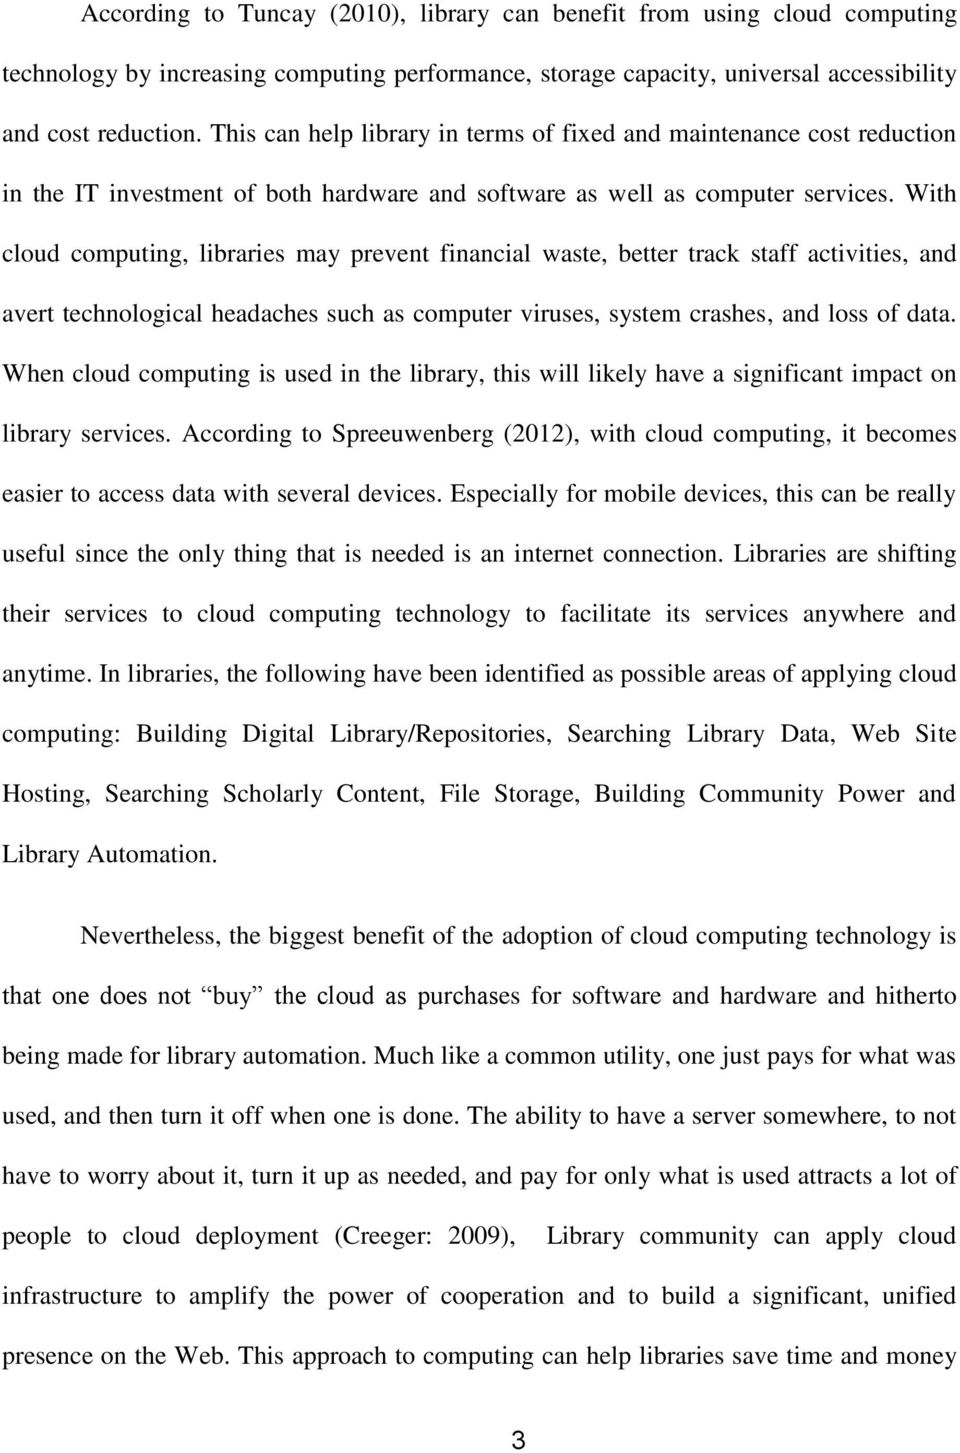 adoption of cloud computing technology for library services in the cloud computing libraries prevent financial waste better track staff activities and